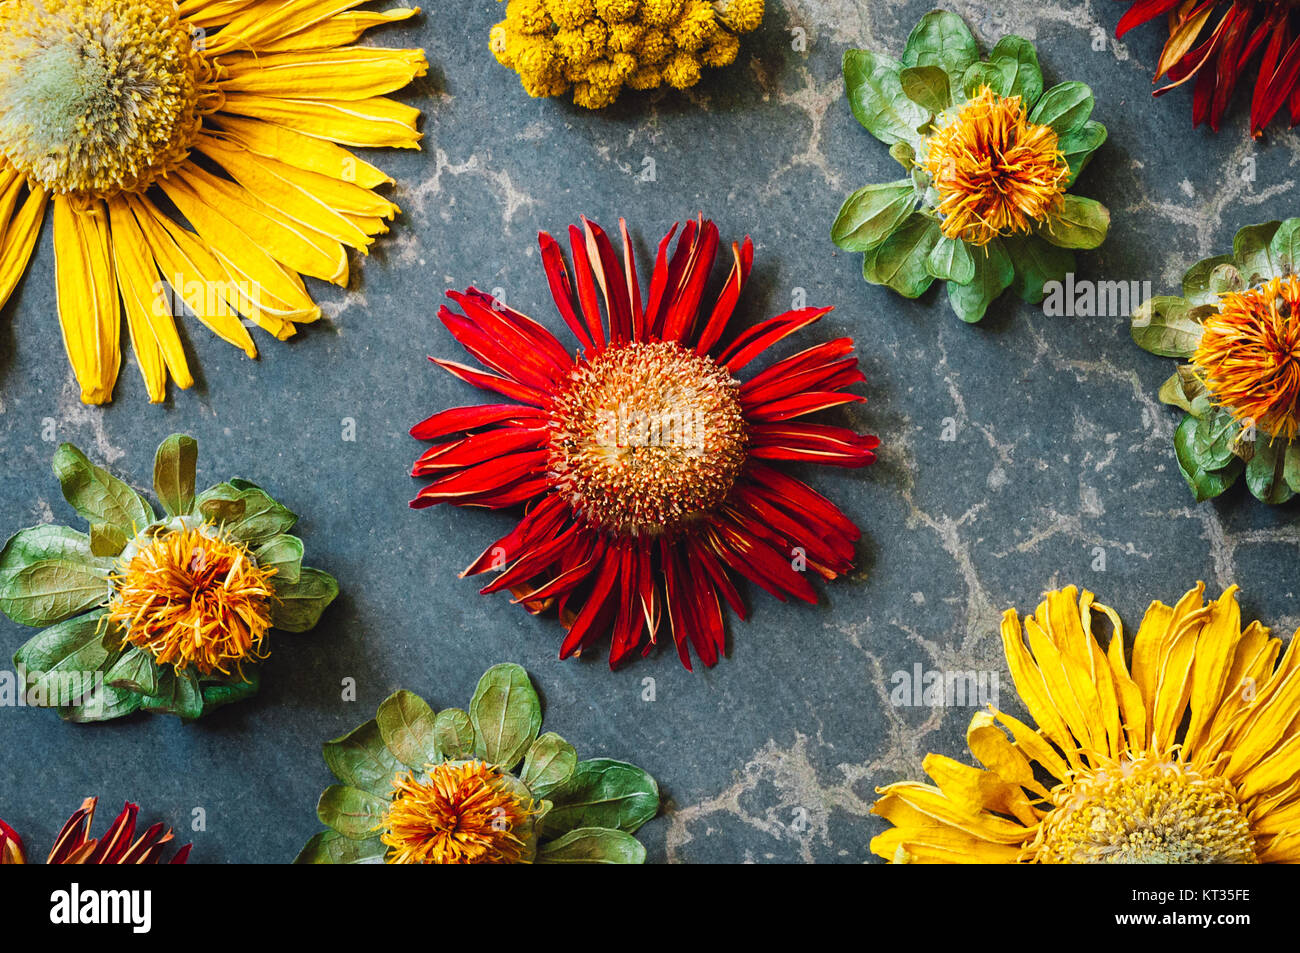 Dried Daisies and Assorted Flowers - Stock Image